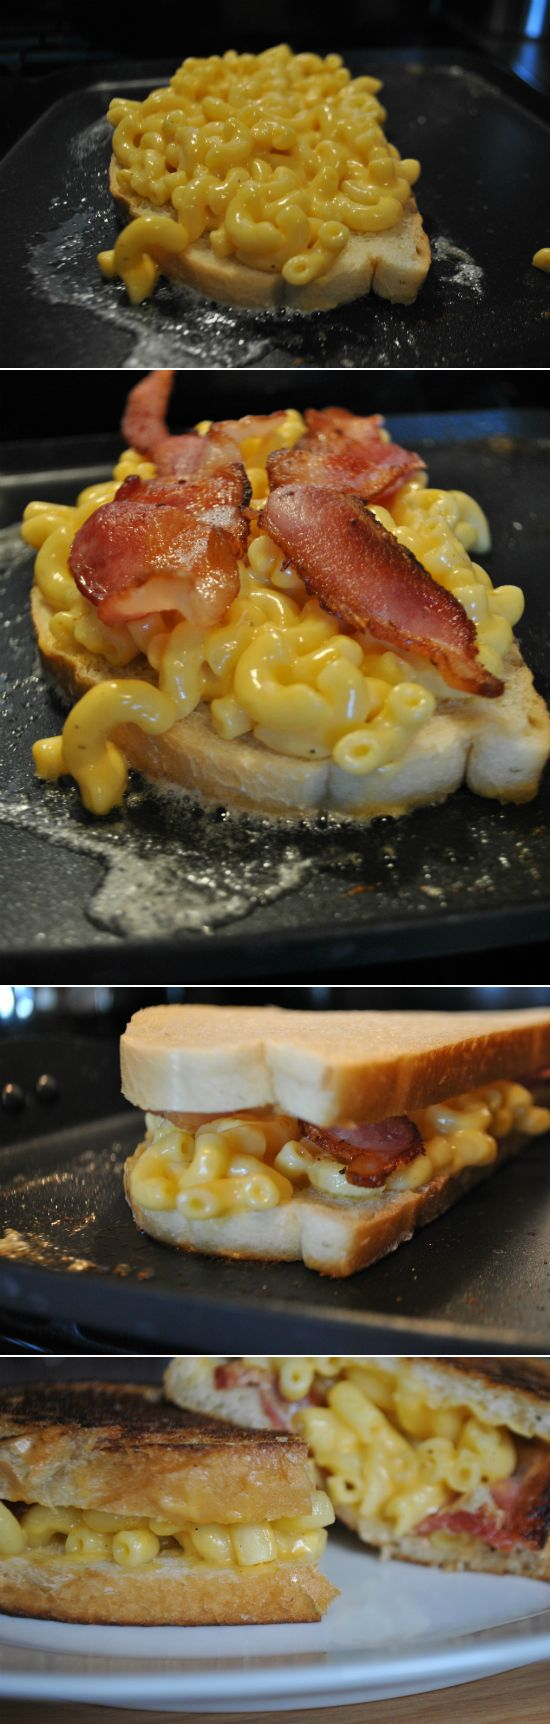 Grilled Mac and Cheese Sandwich! Love Mac and Cheese, love grilled cheese and just about anything is better with bacon so what's not to love?